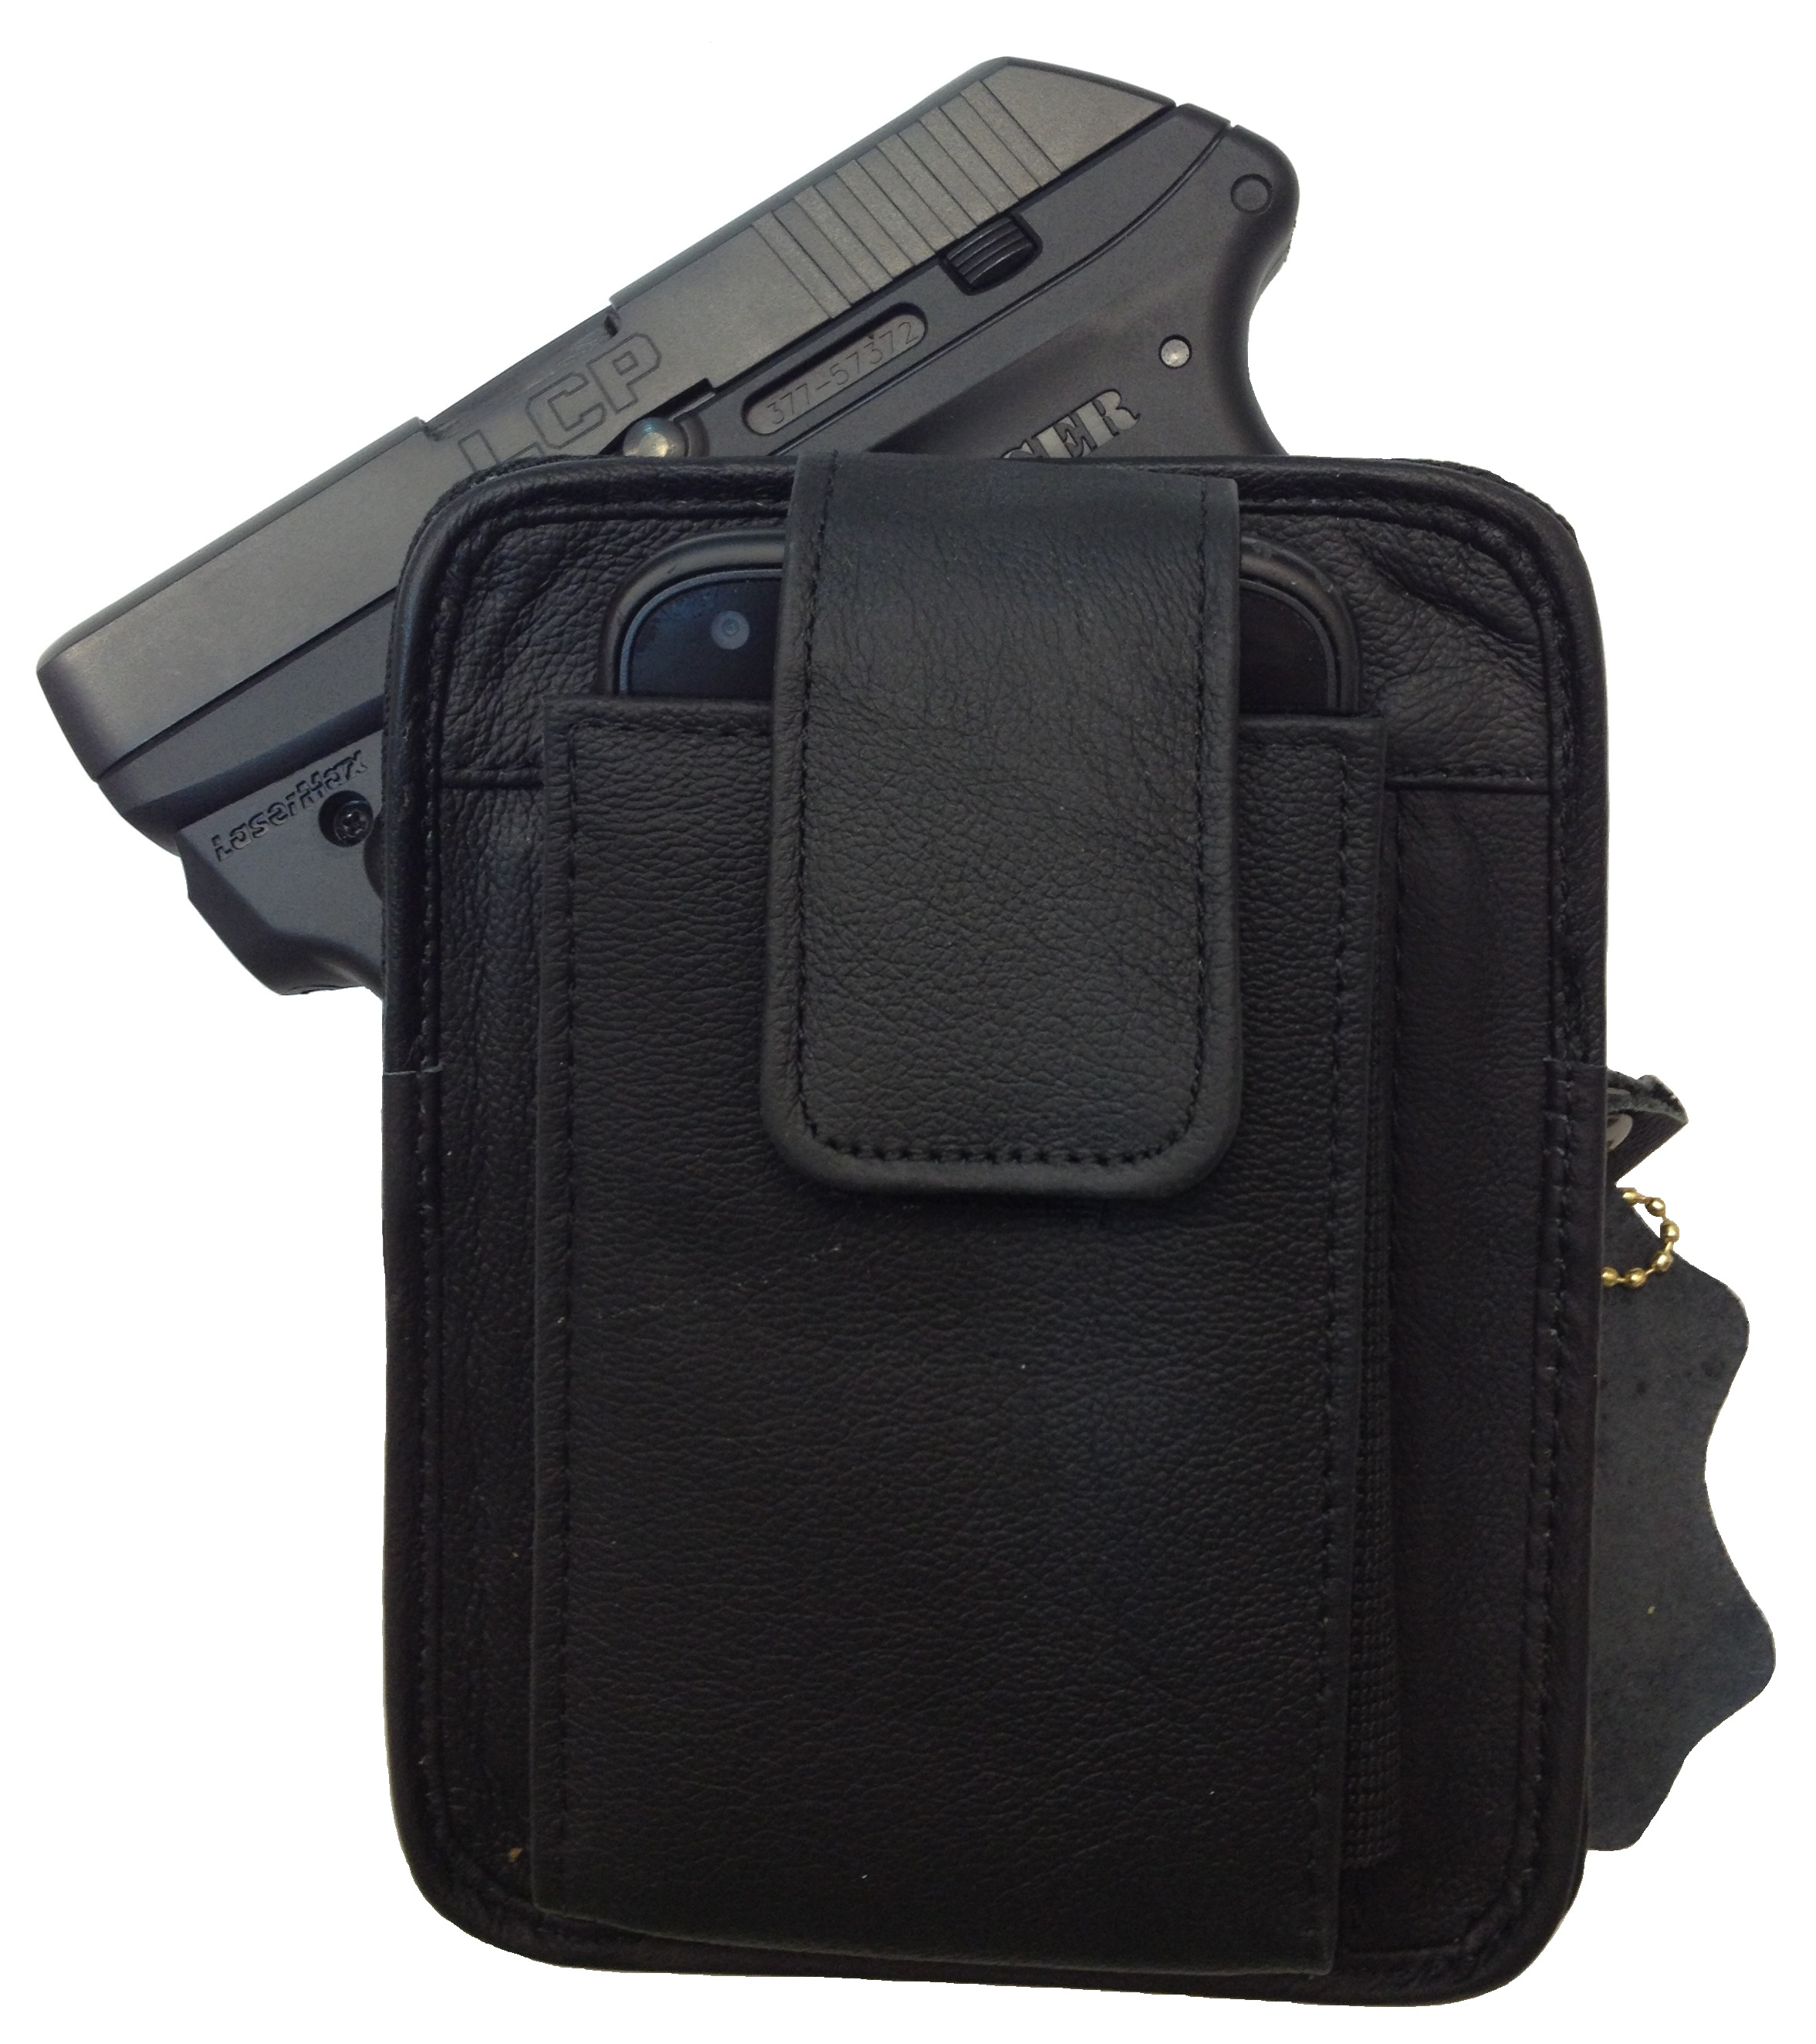 Leather Concealment Gun Holster and Cell Phone Case All In